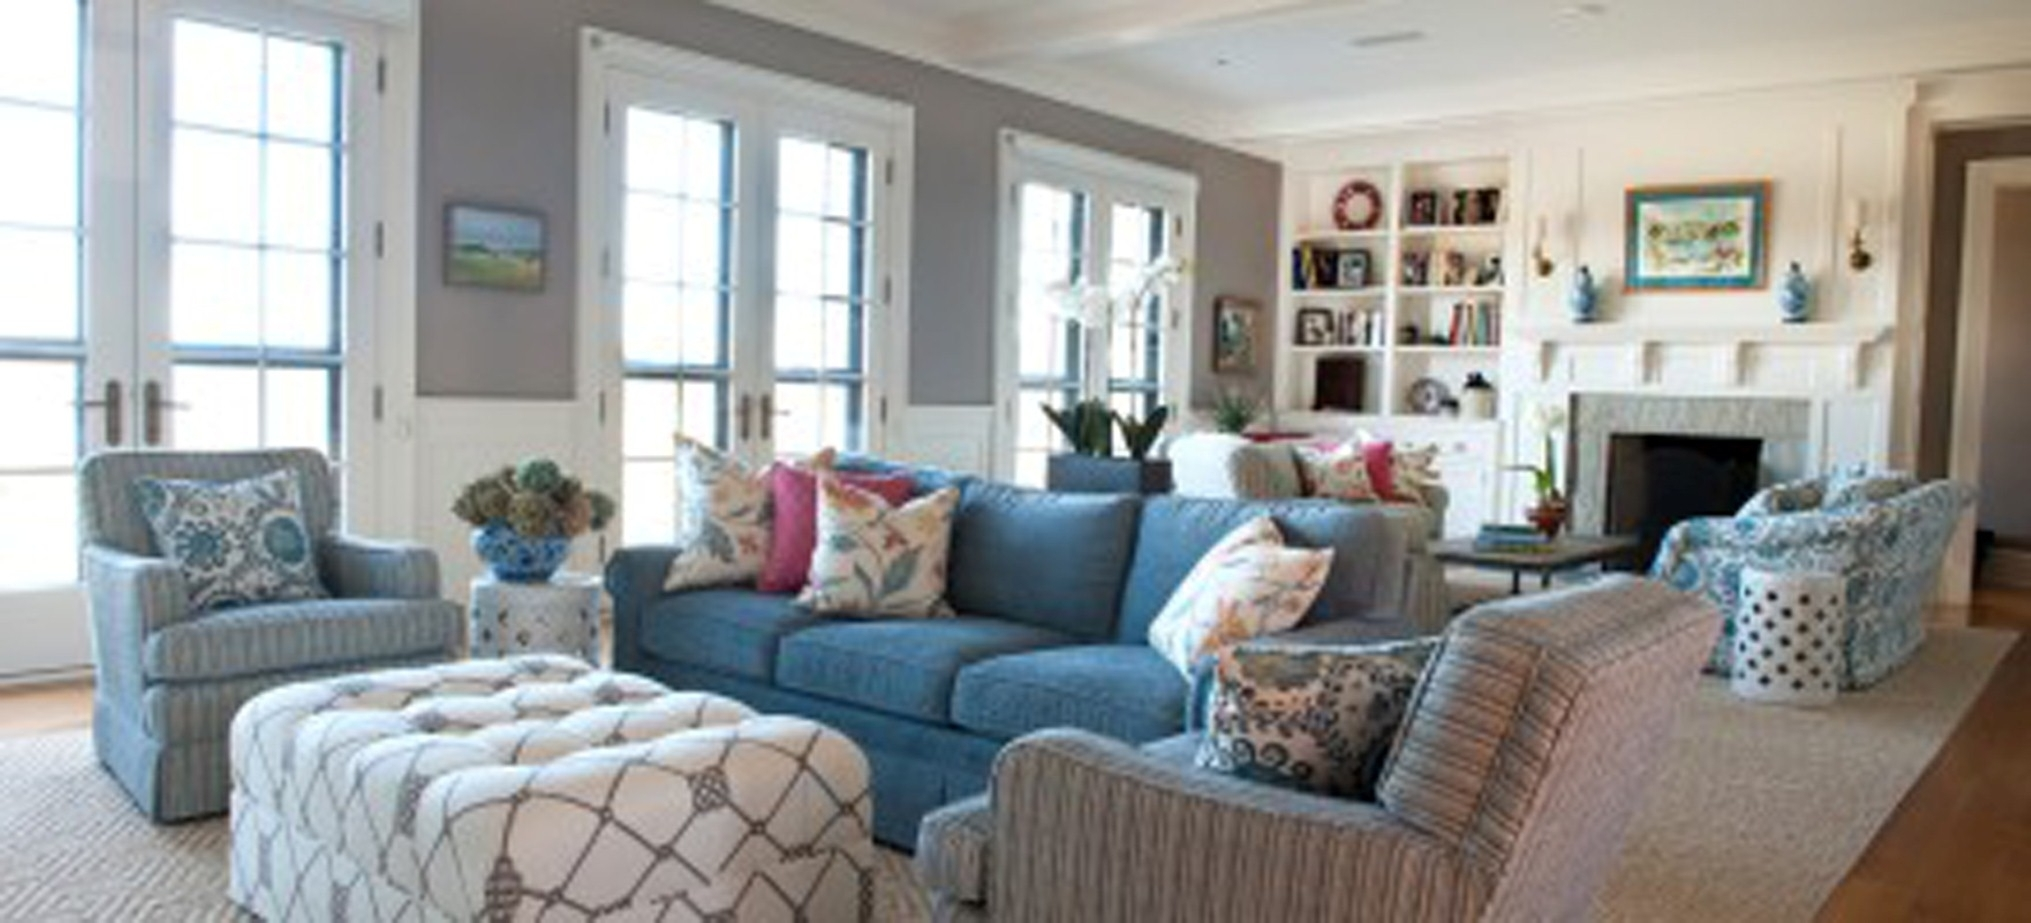 Modern Living Room Interior Design With Gorgeous Blue Sofa Plus Outstanding White Ottoman Design (Image 20 of 30)